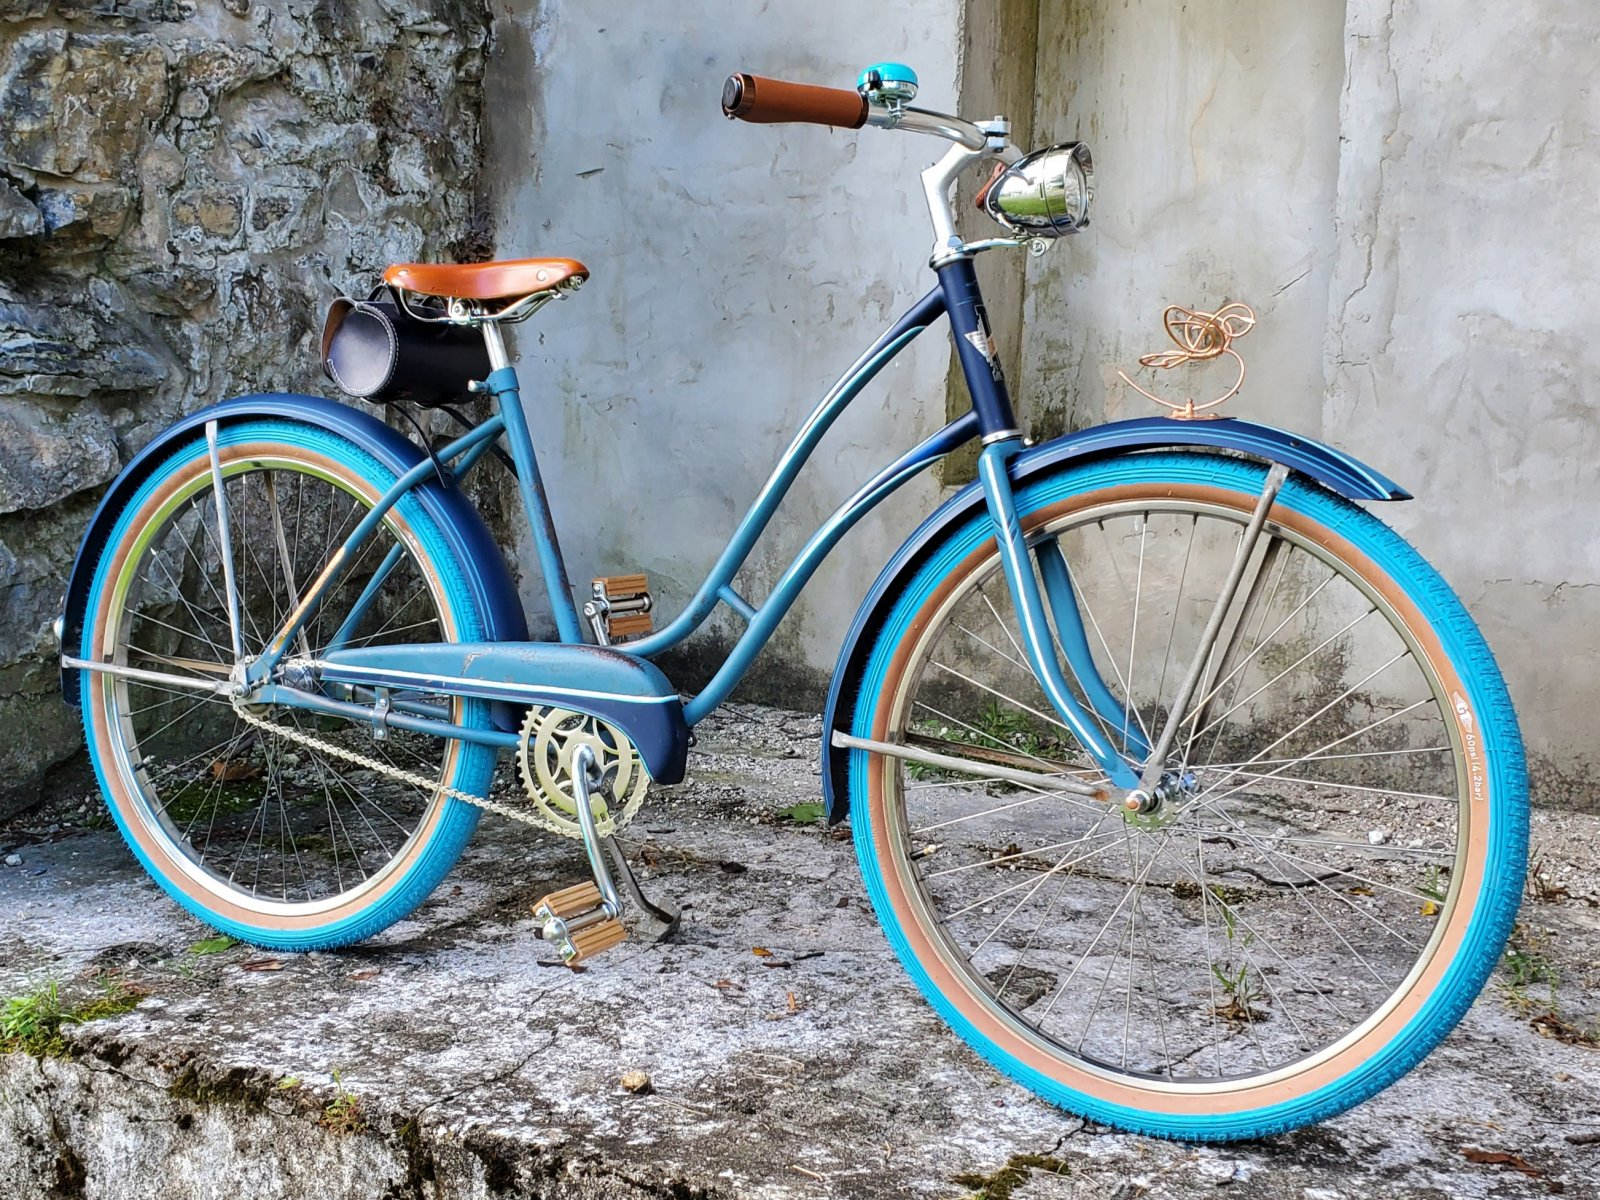 015 56. The Bluebird of Happiness by Chic Cycles.jpg